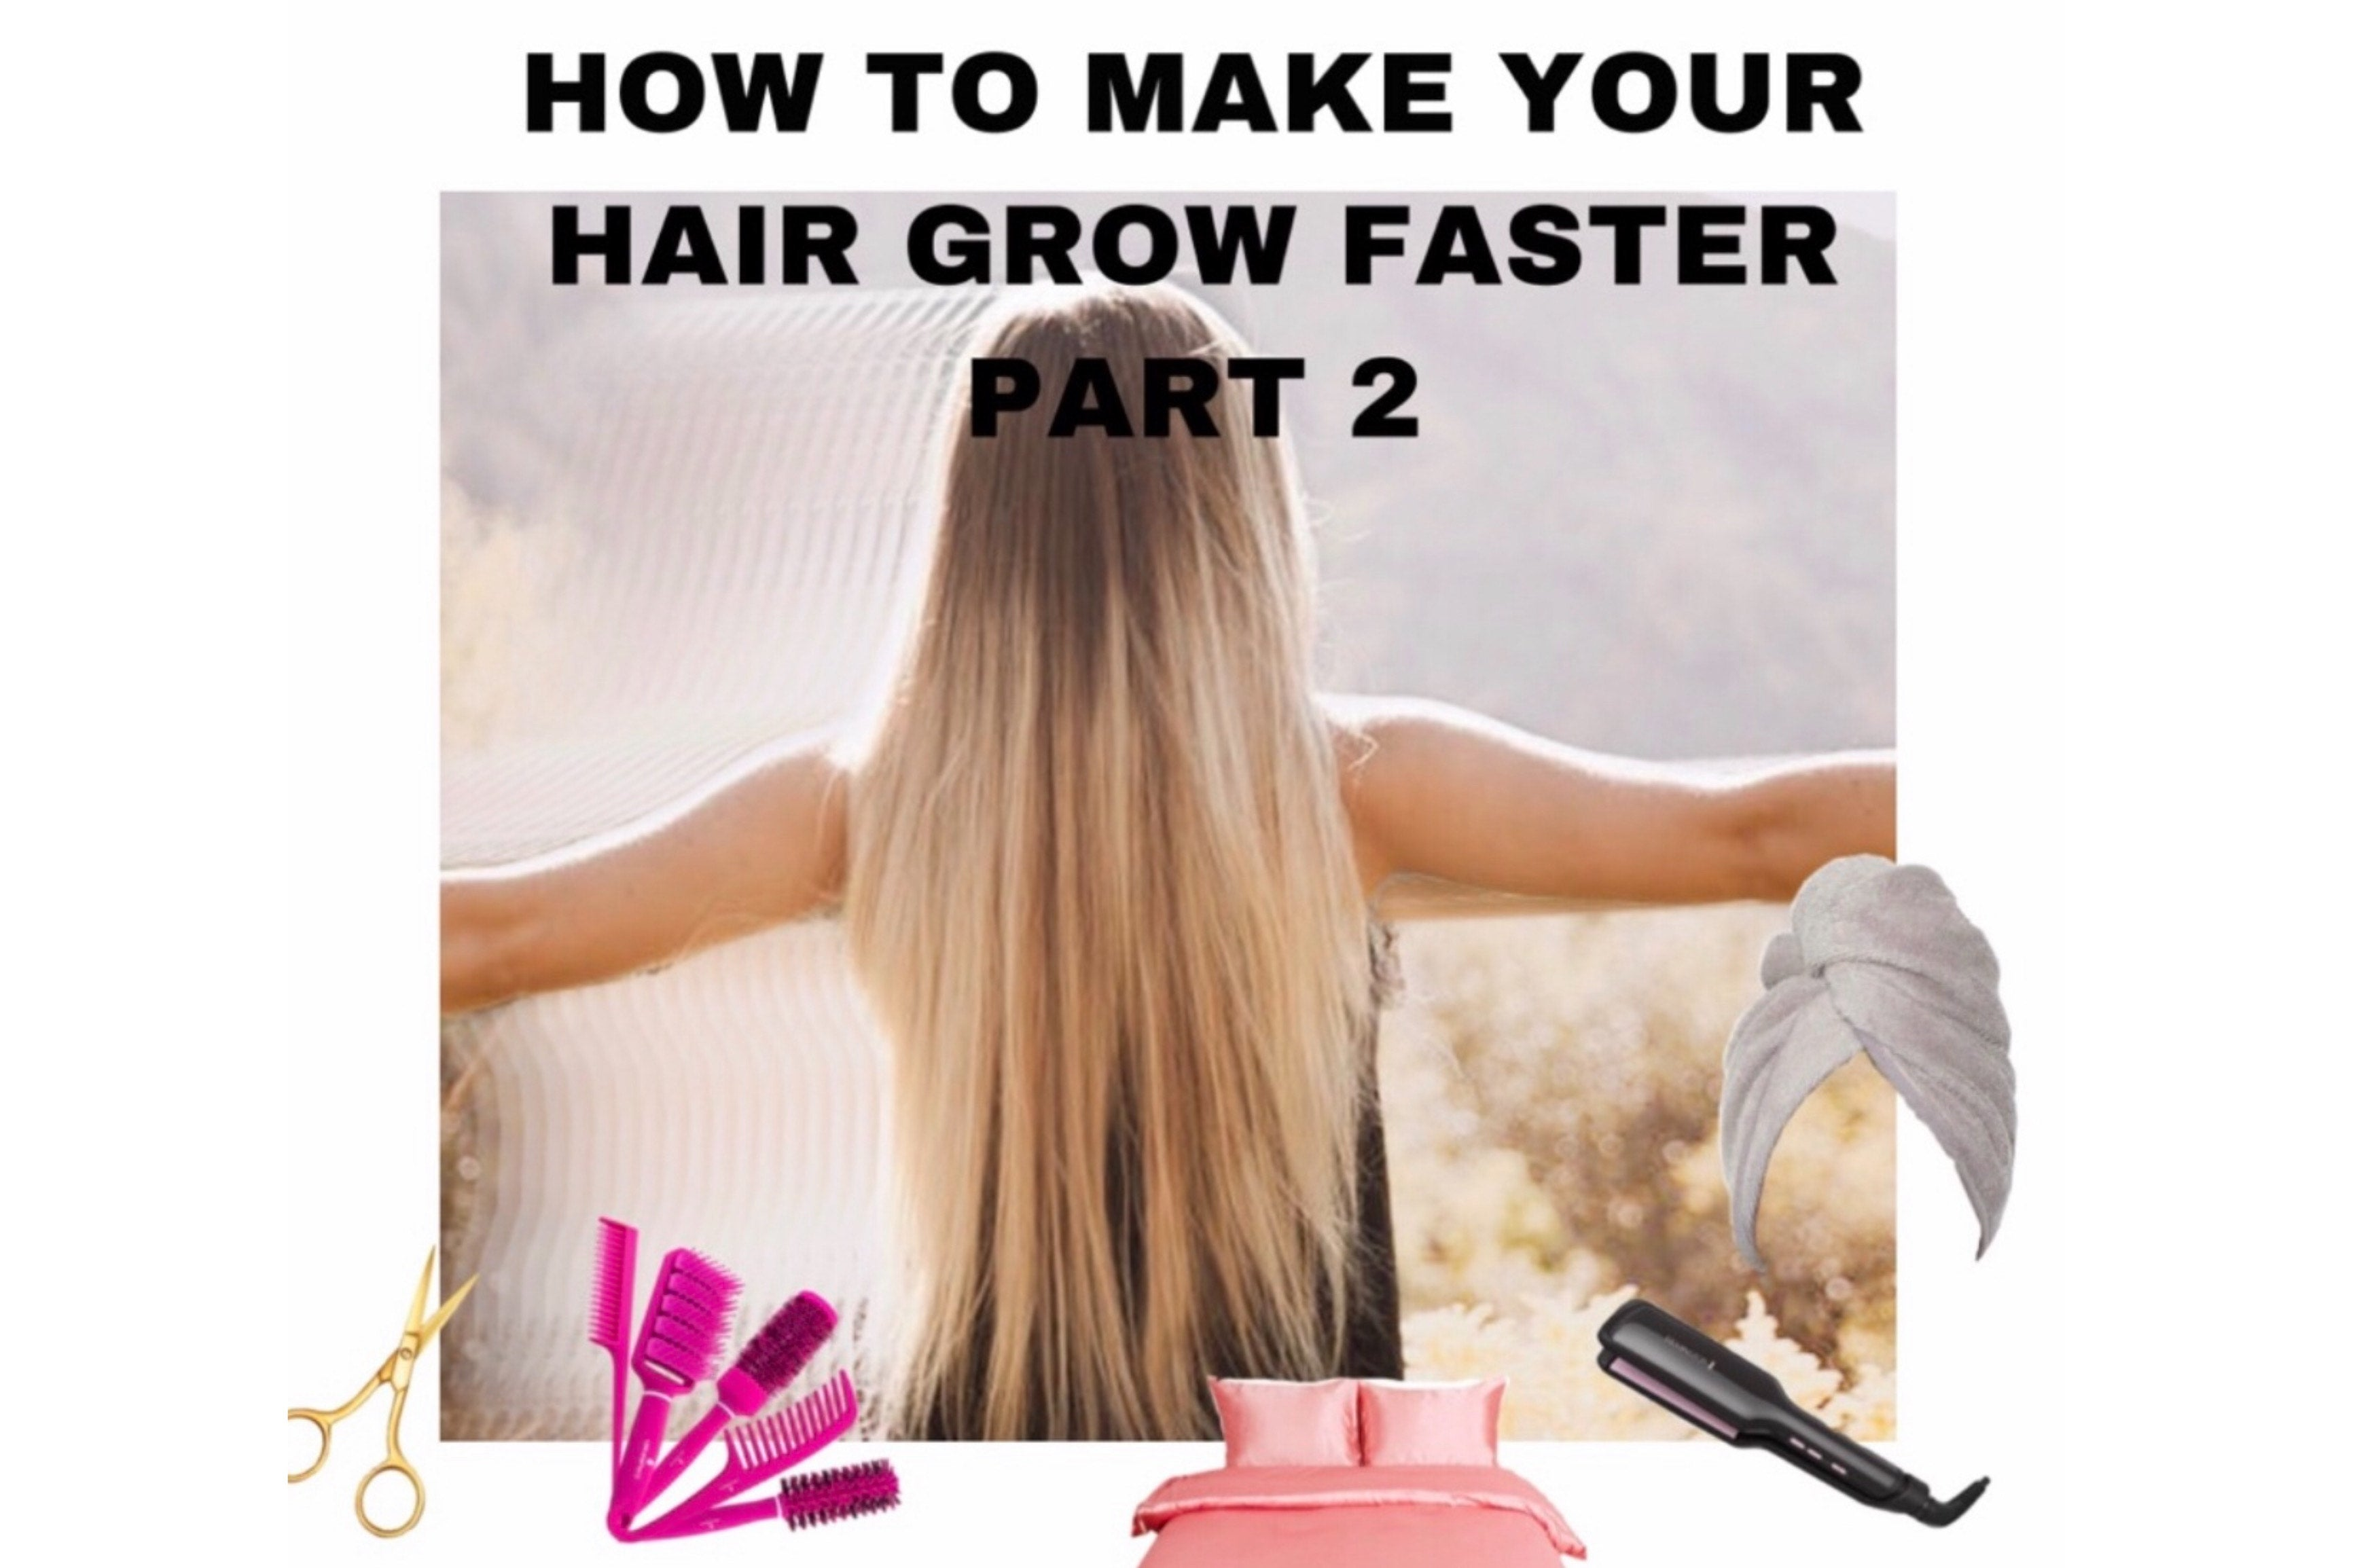 How To Make Your Hair Grow Faster Part 2